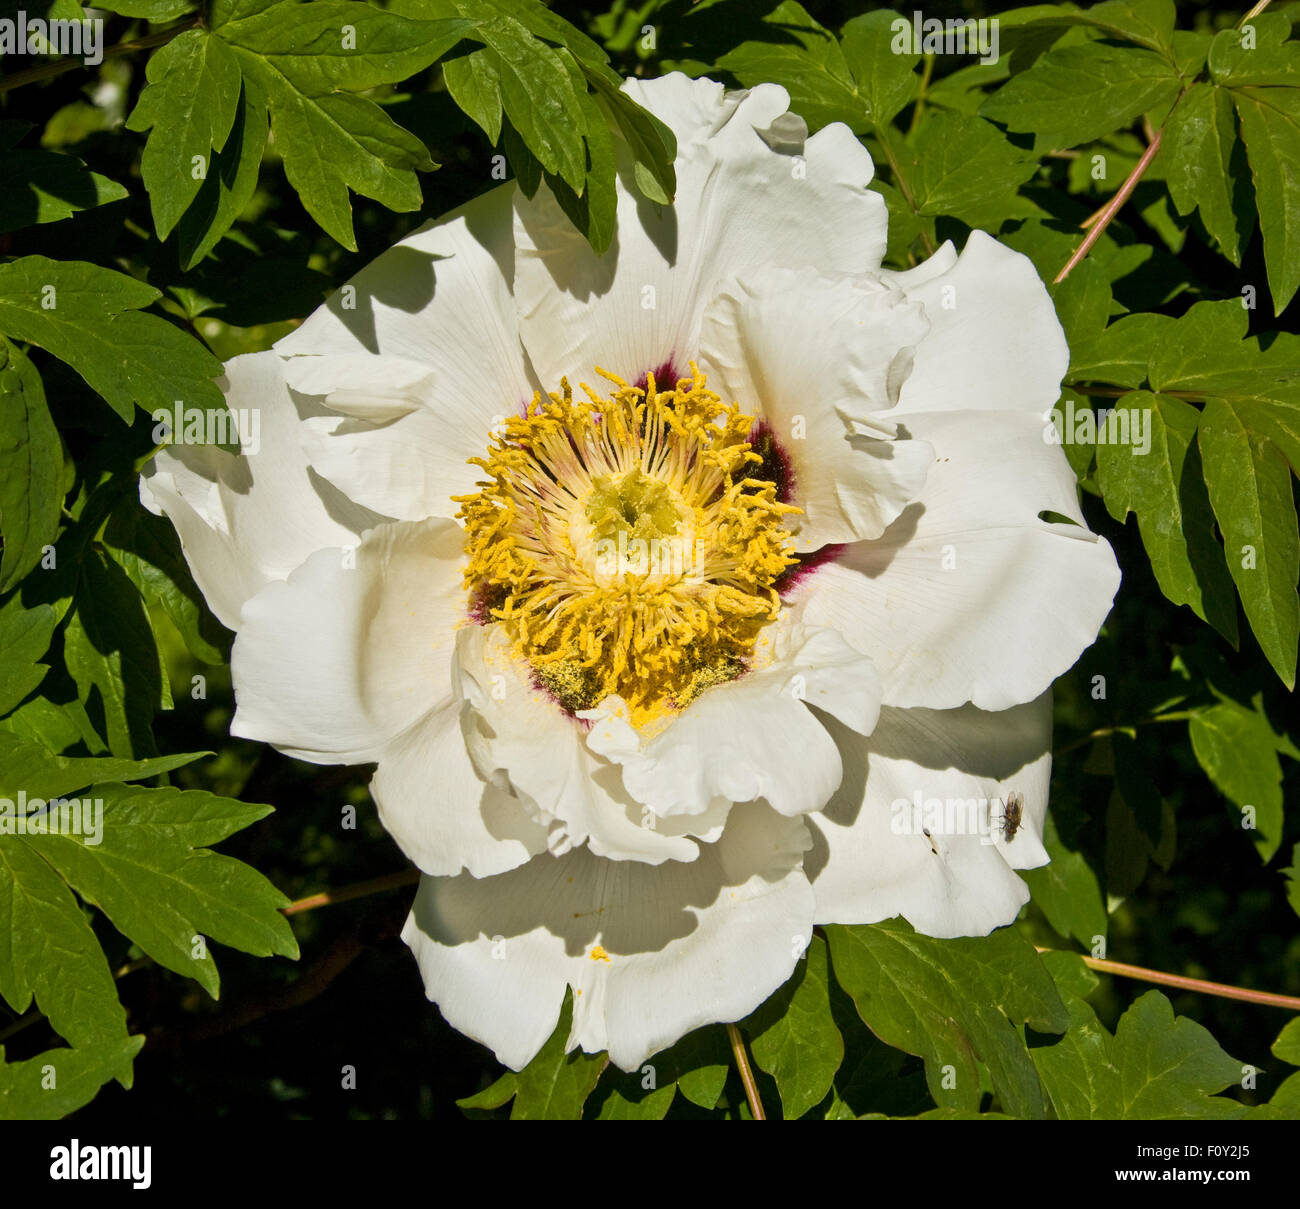 Big white flower gallery fresh lotus flowers one big white flower of treelike peony stock photo 86646621 alamy mightylinksfo